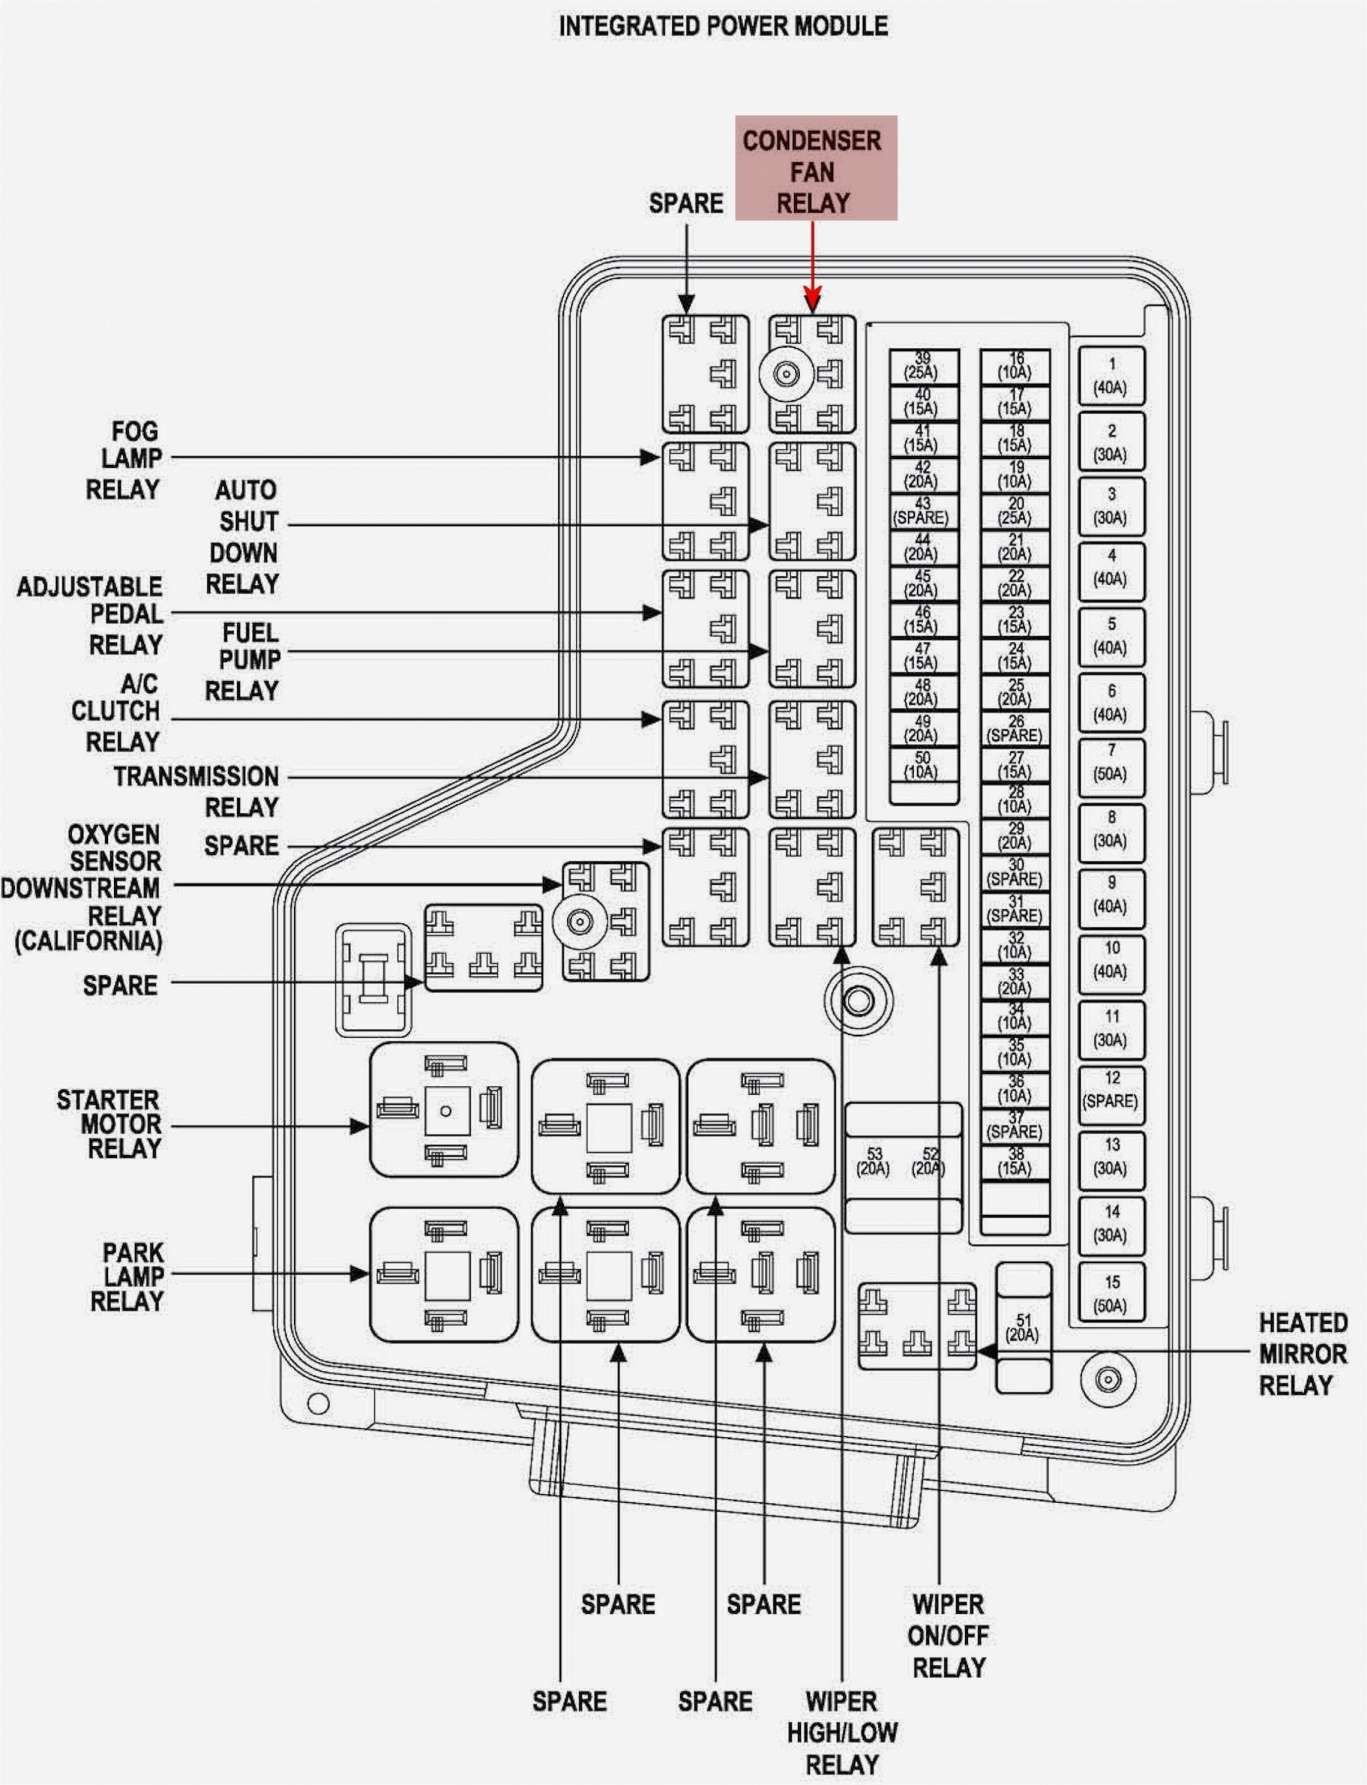 fuse for 1995 chevy box van 17 fuse box diagram 96 ram 1500 truck truck diagram in 2020  17 fuse box diagram 96 ram 1500 truck